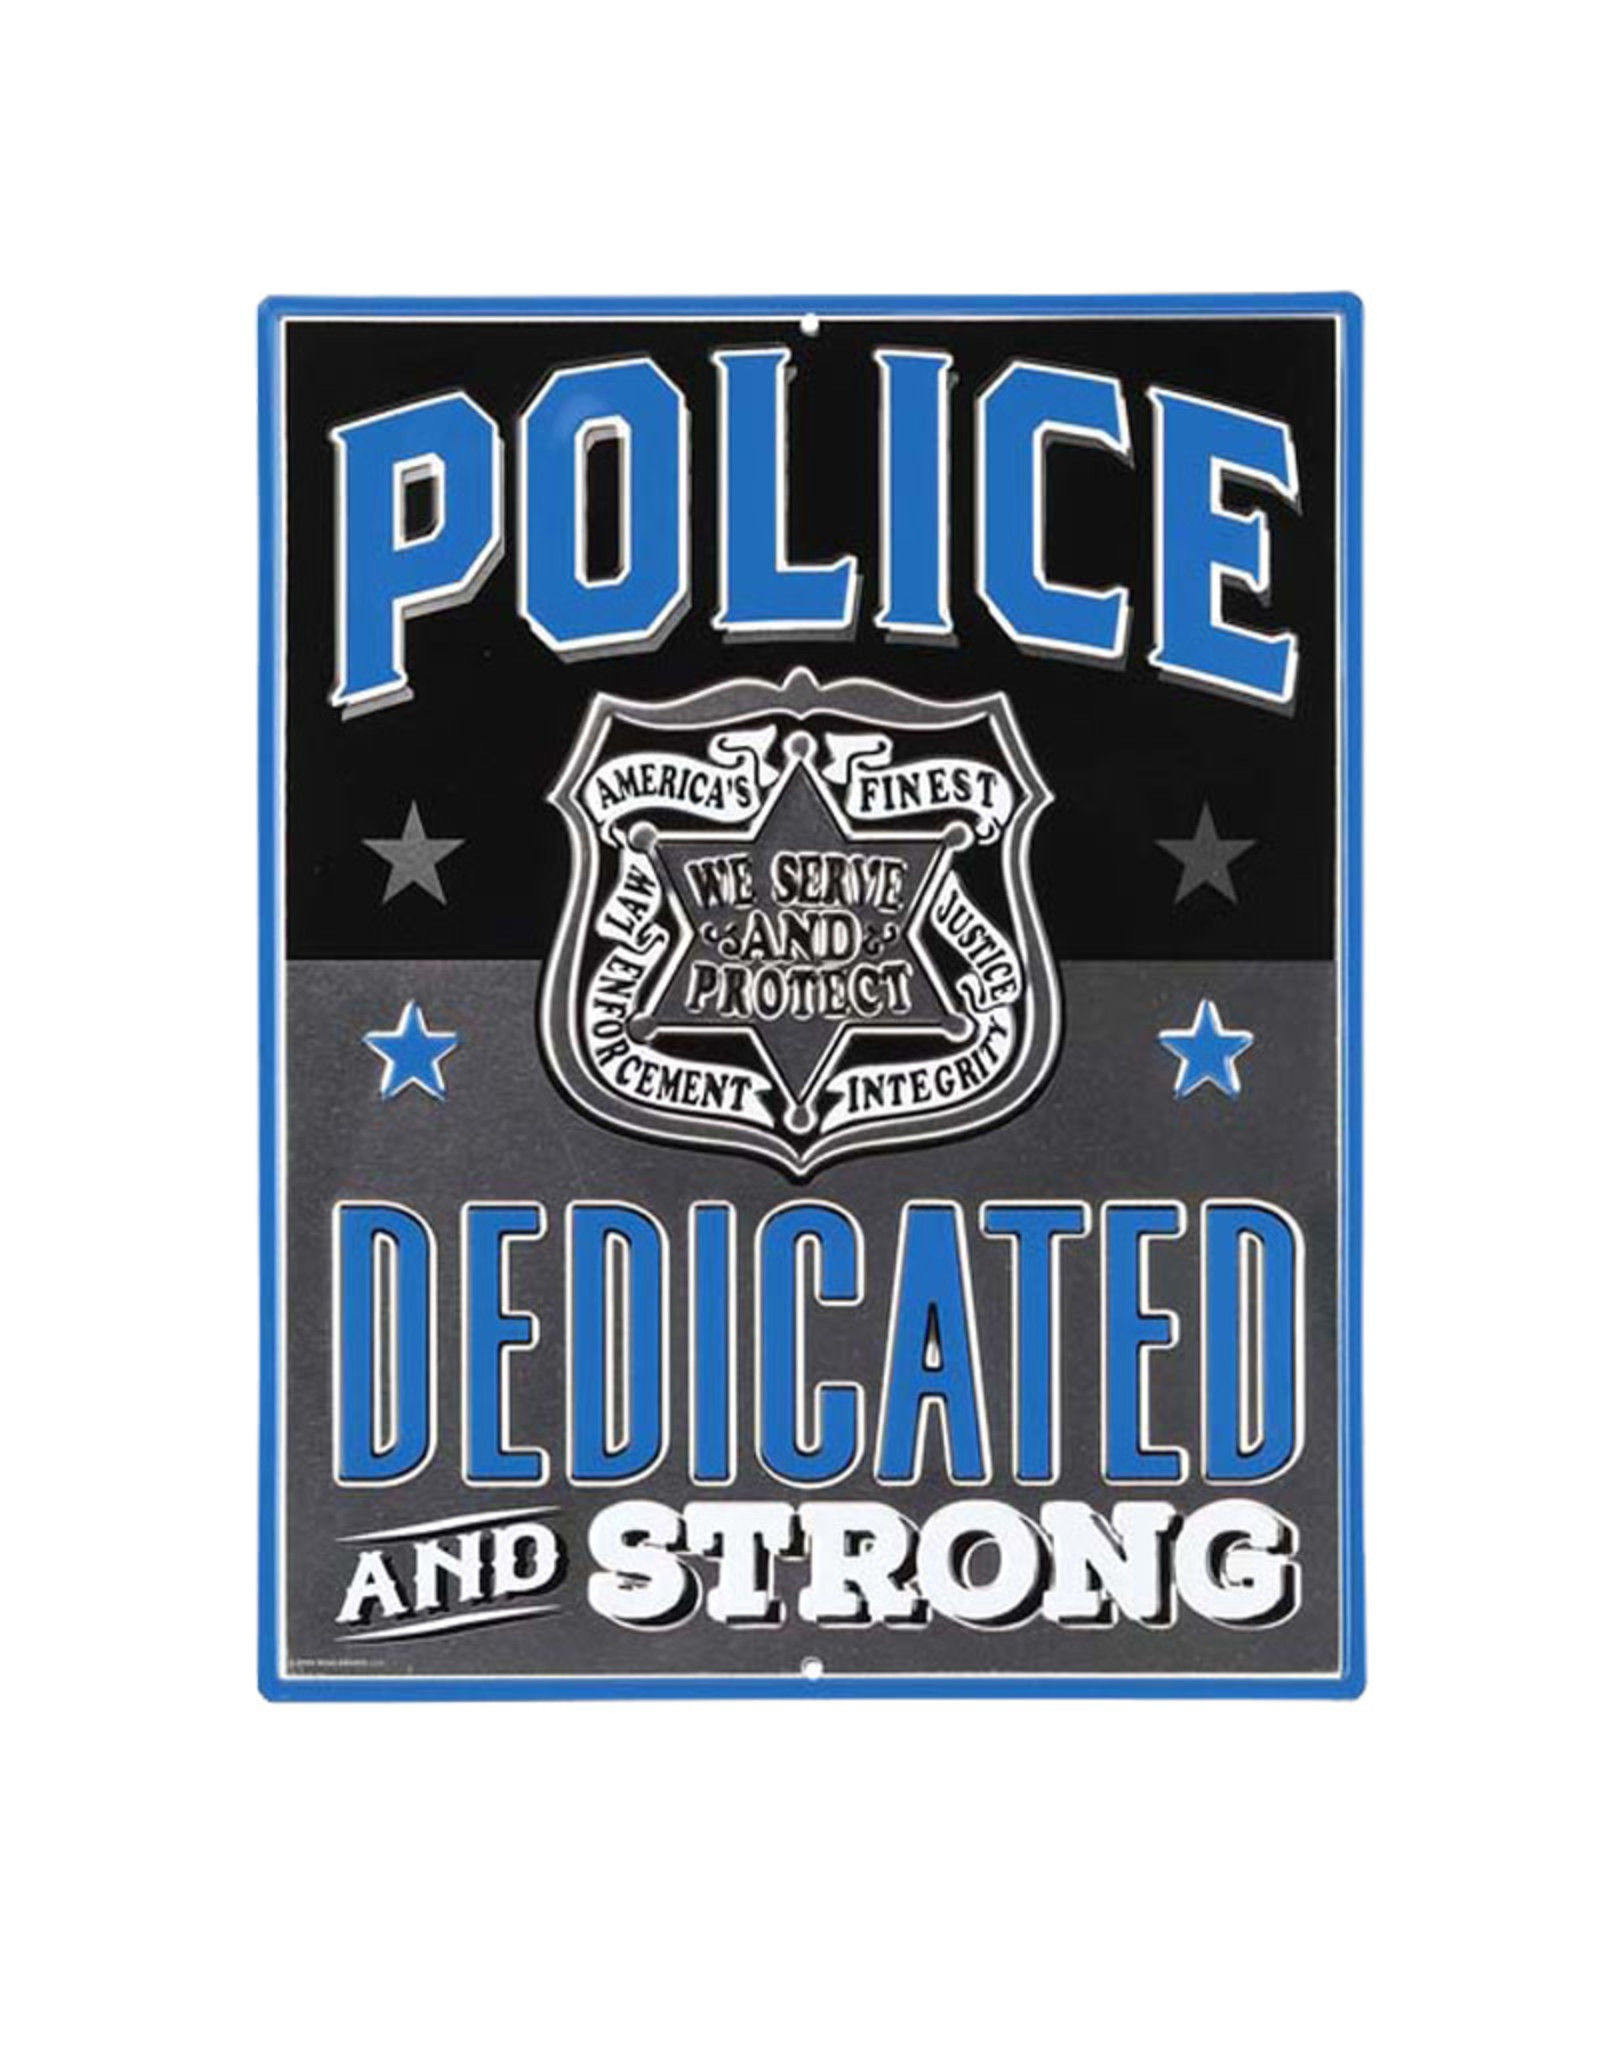 Police dedicated and strong ( Embossed Metal Plate)